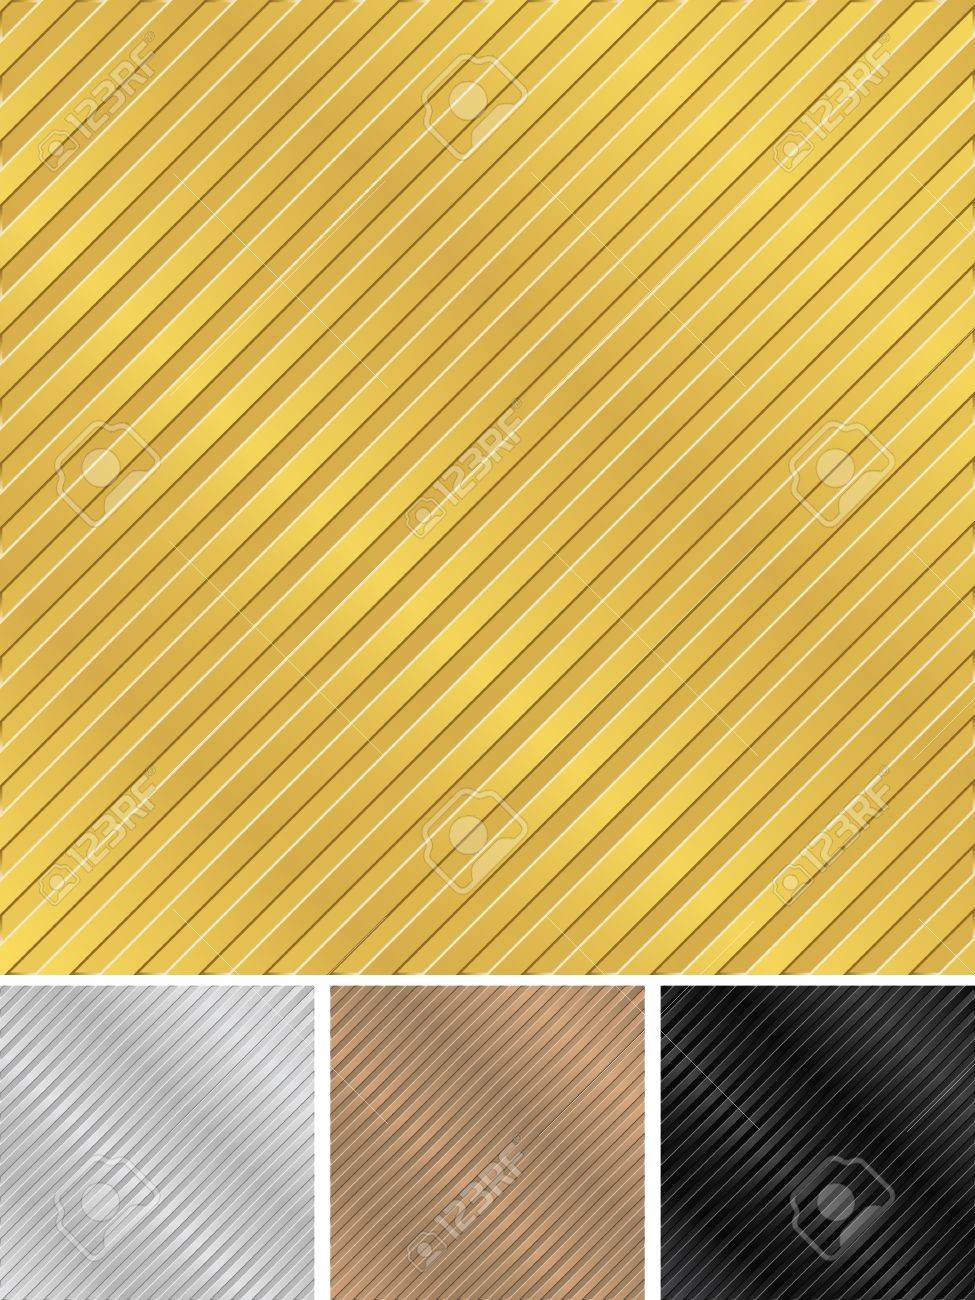 Metal striped backgrounds Stock Vector - 10644018